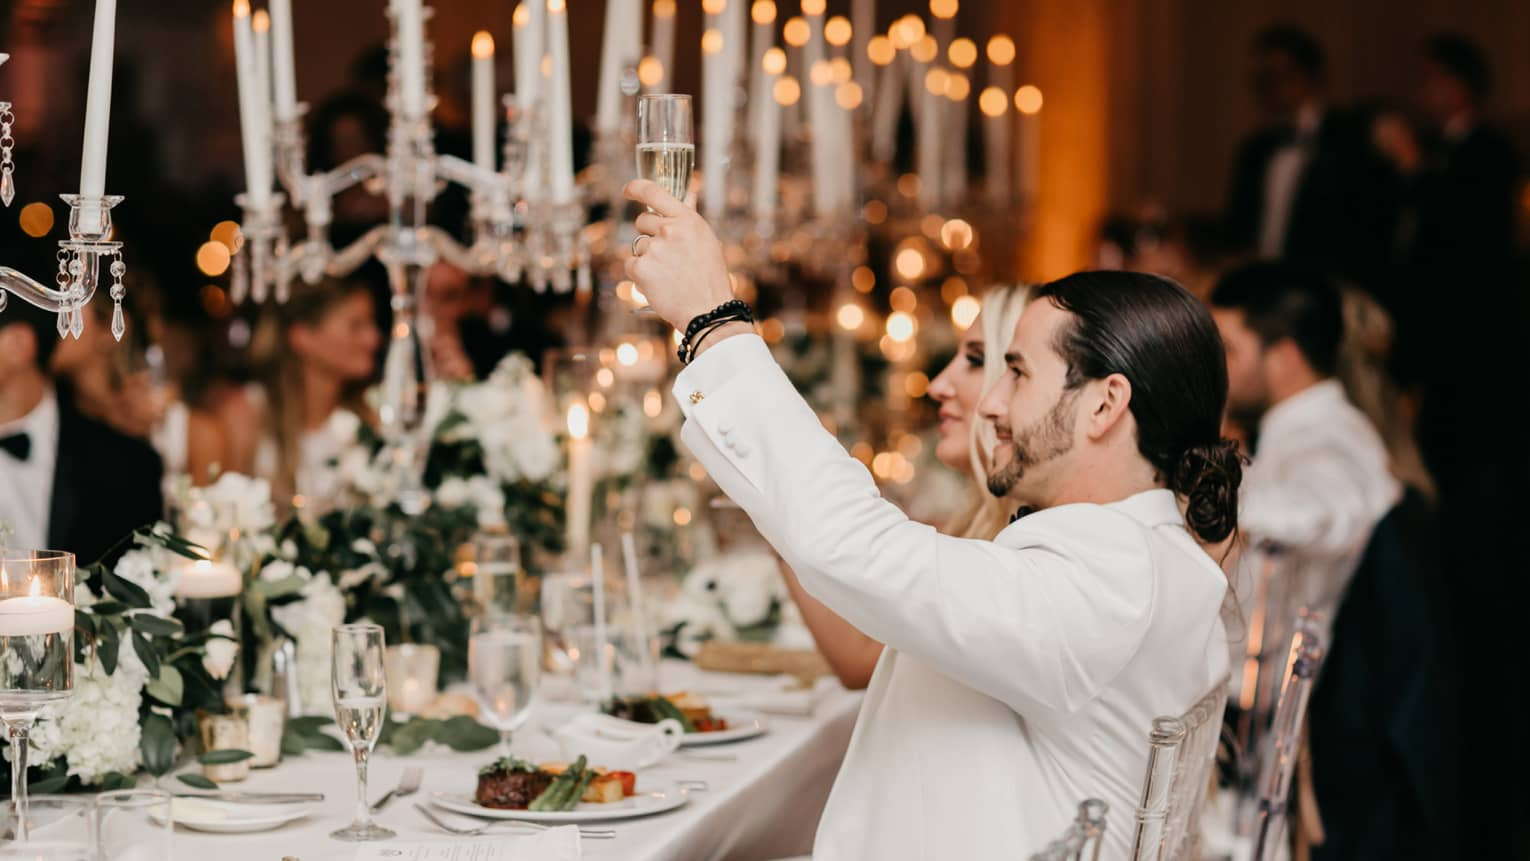 Wedding guests raise glasses during toast at candlelit banquet table